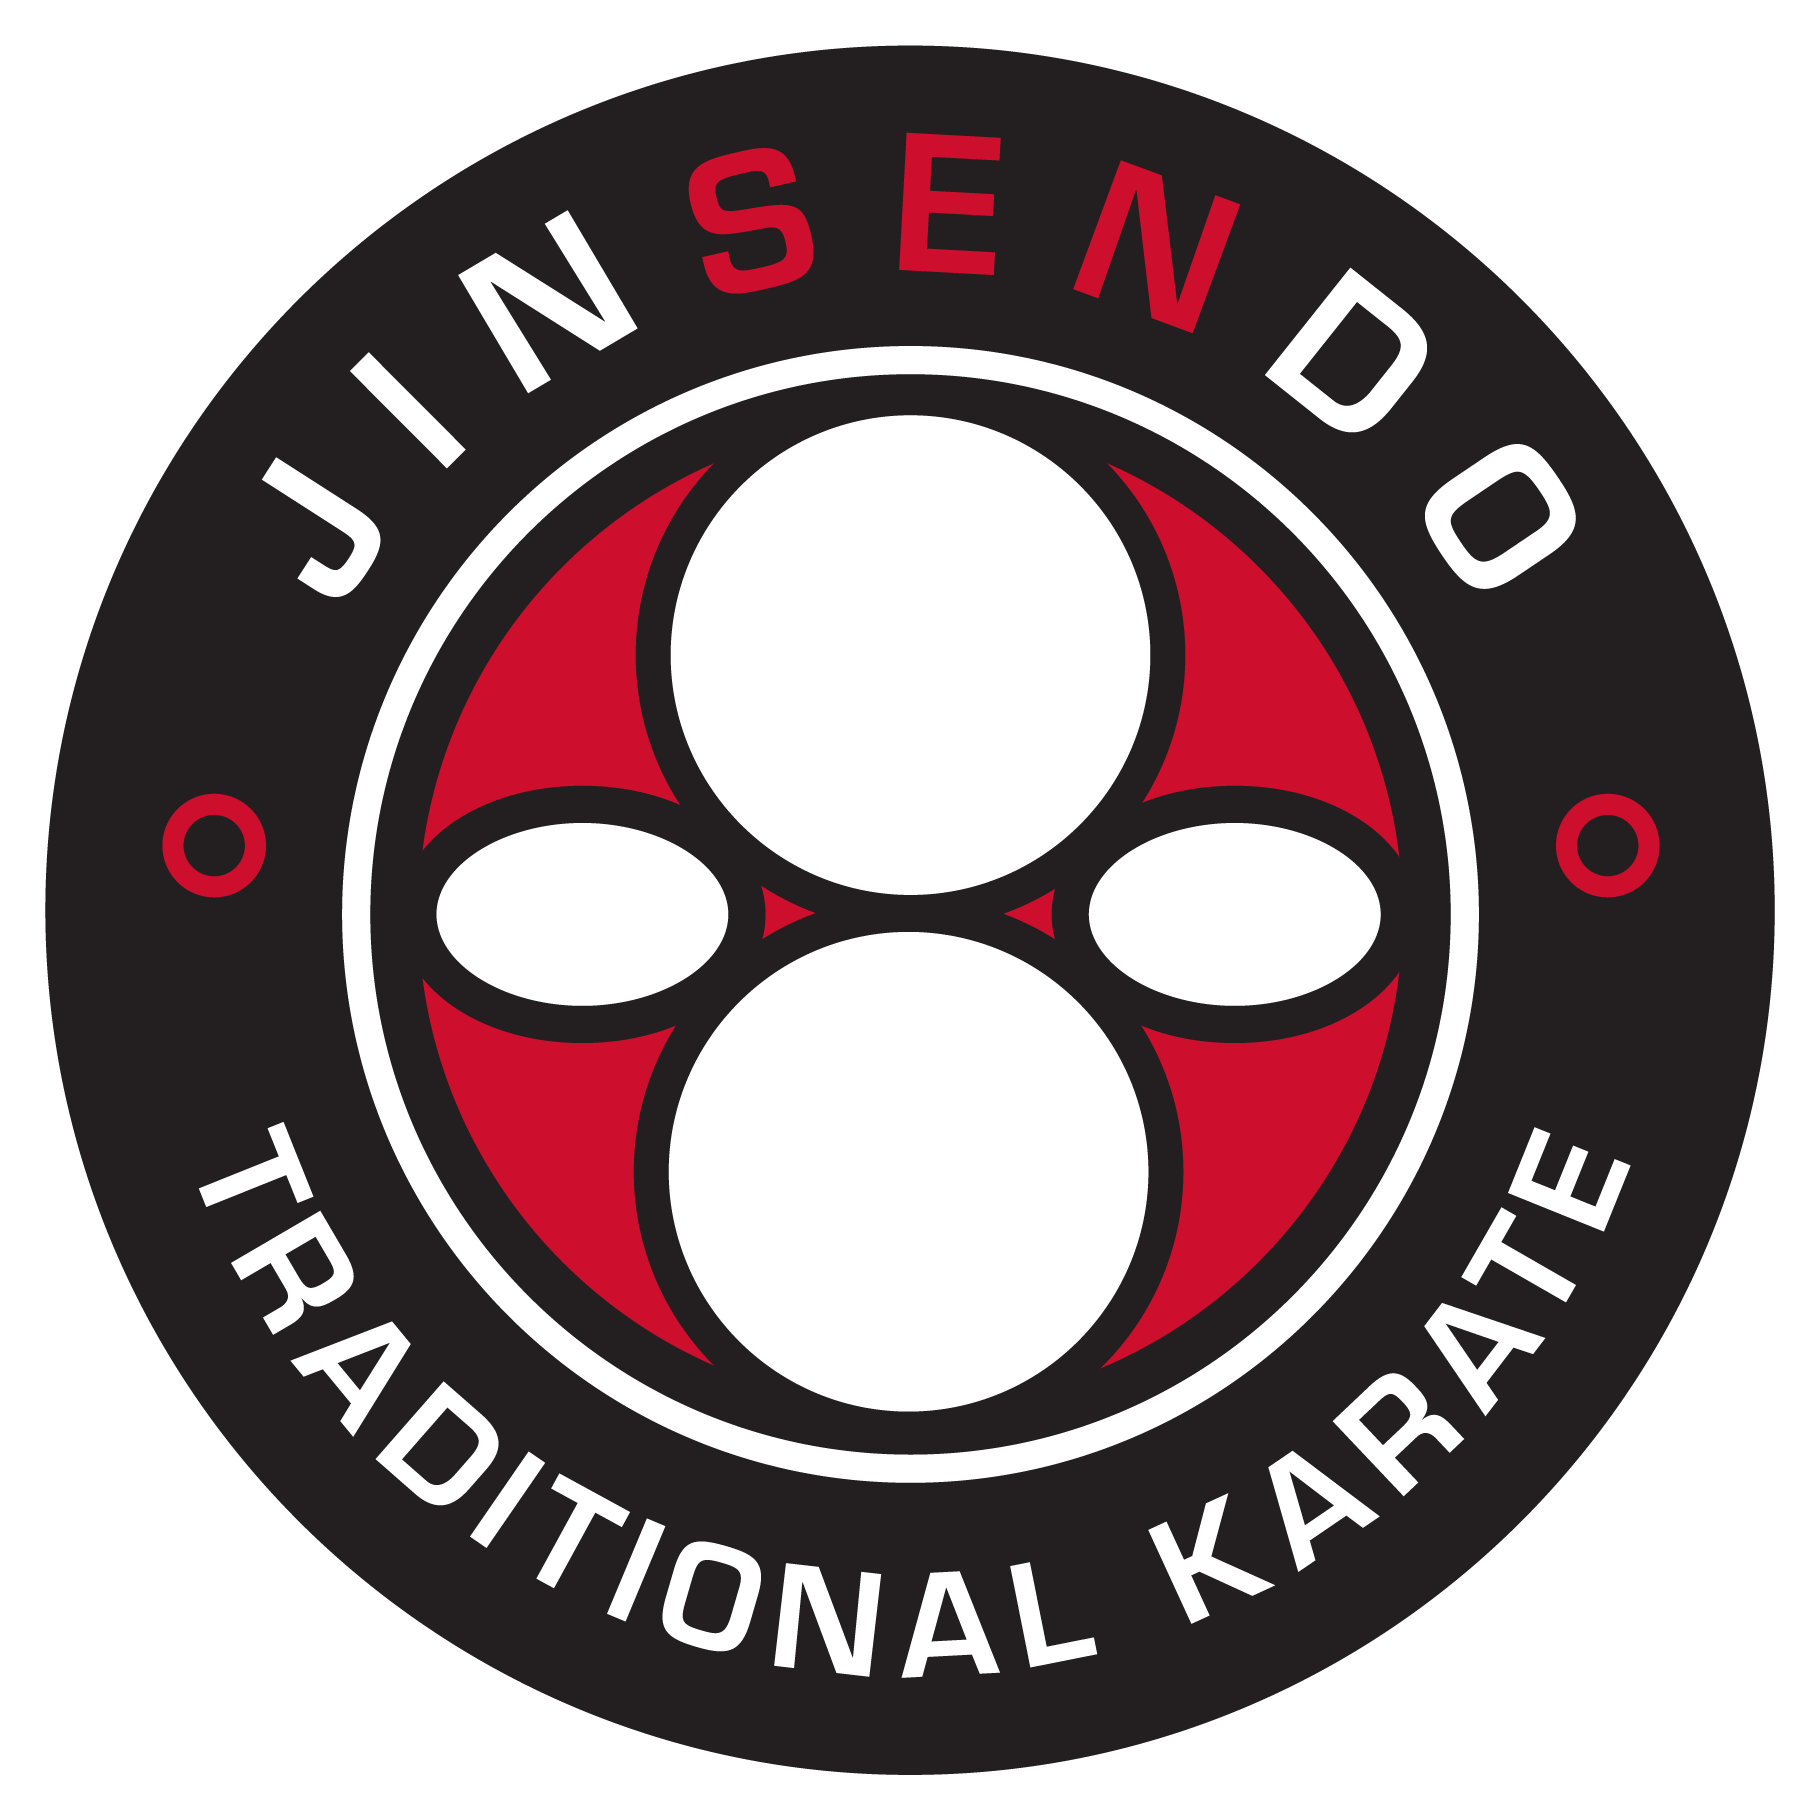 jinsendo-karate header logo2